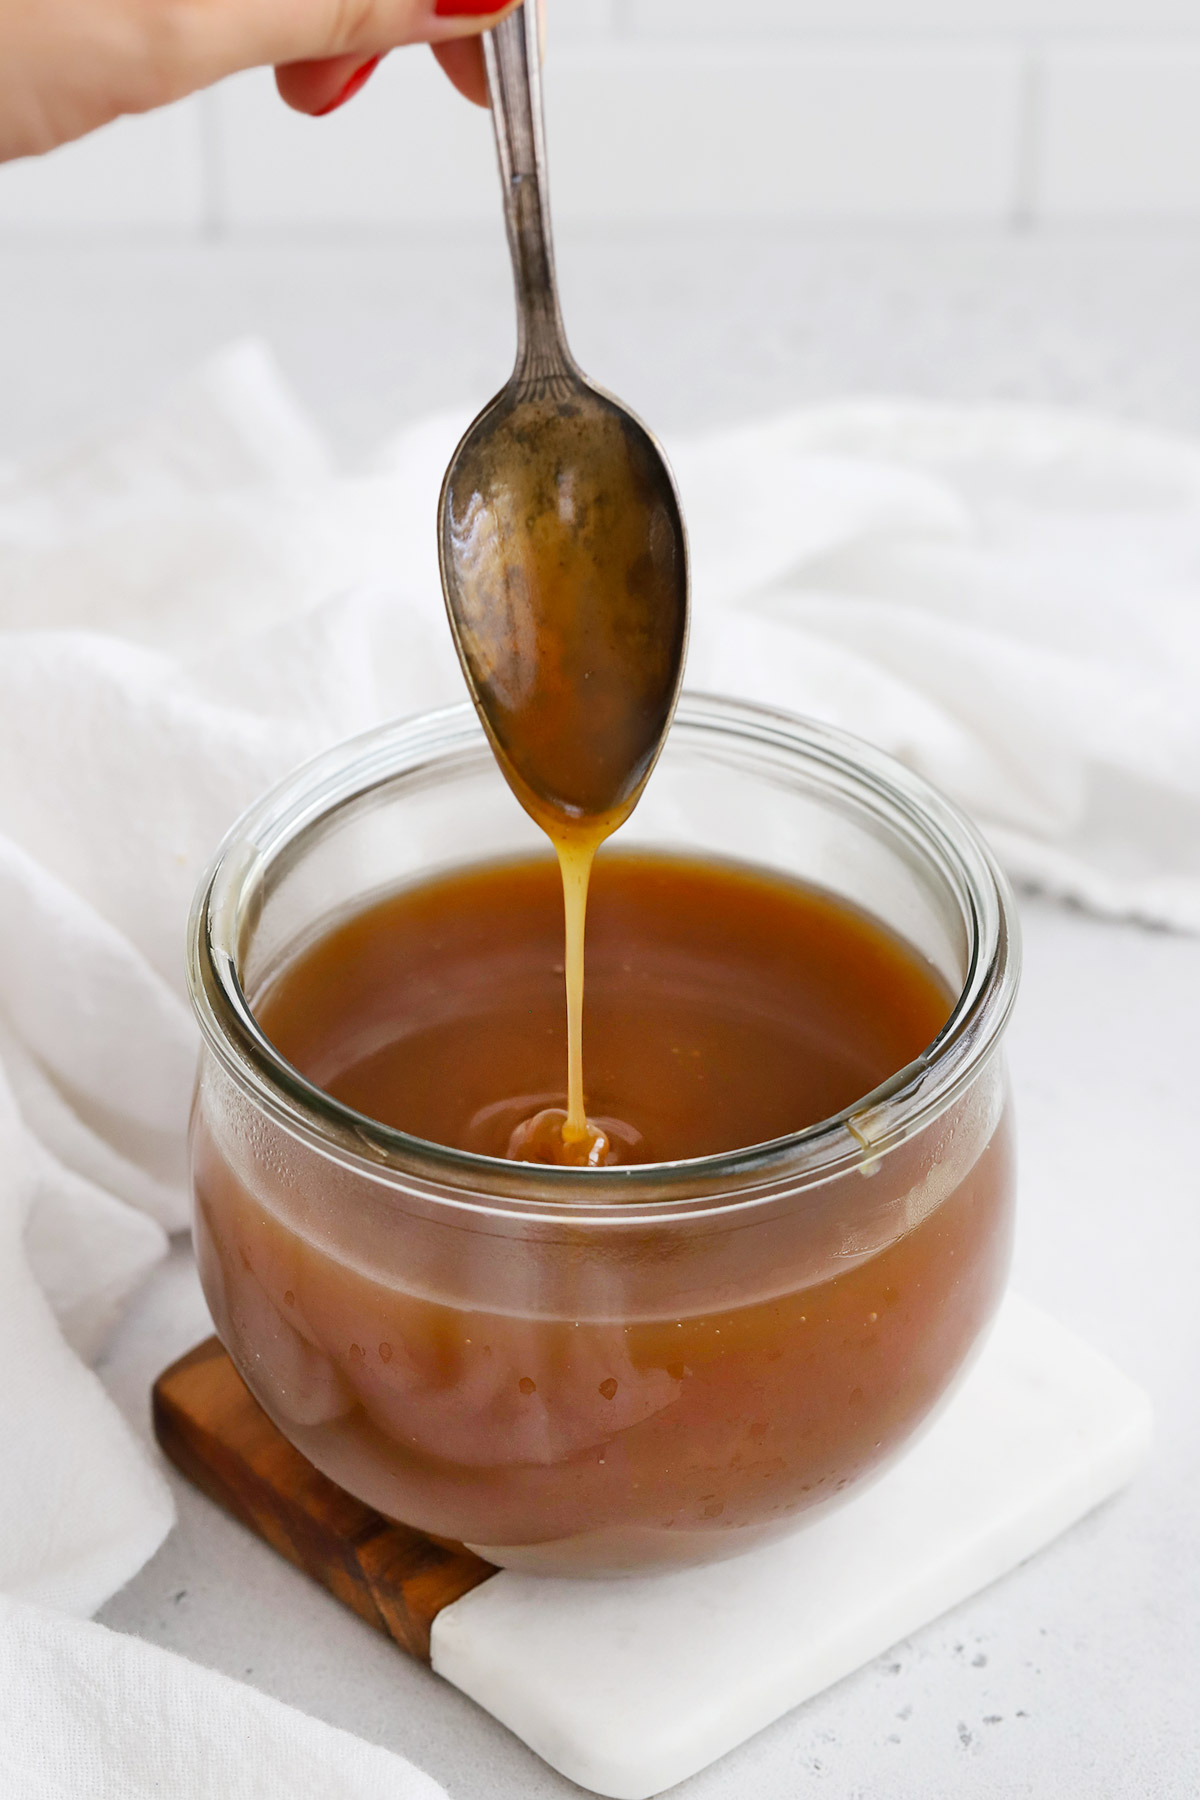 Spoon drizzling Vegan Apple Cider Caramel Sauce